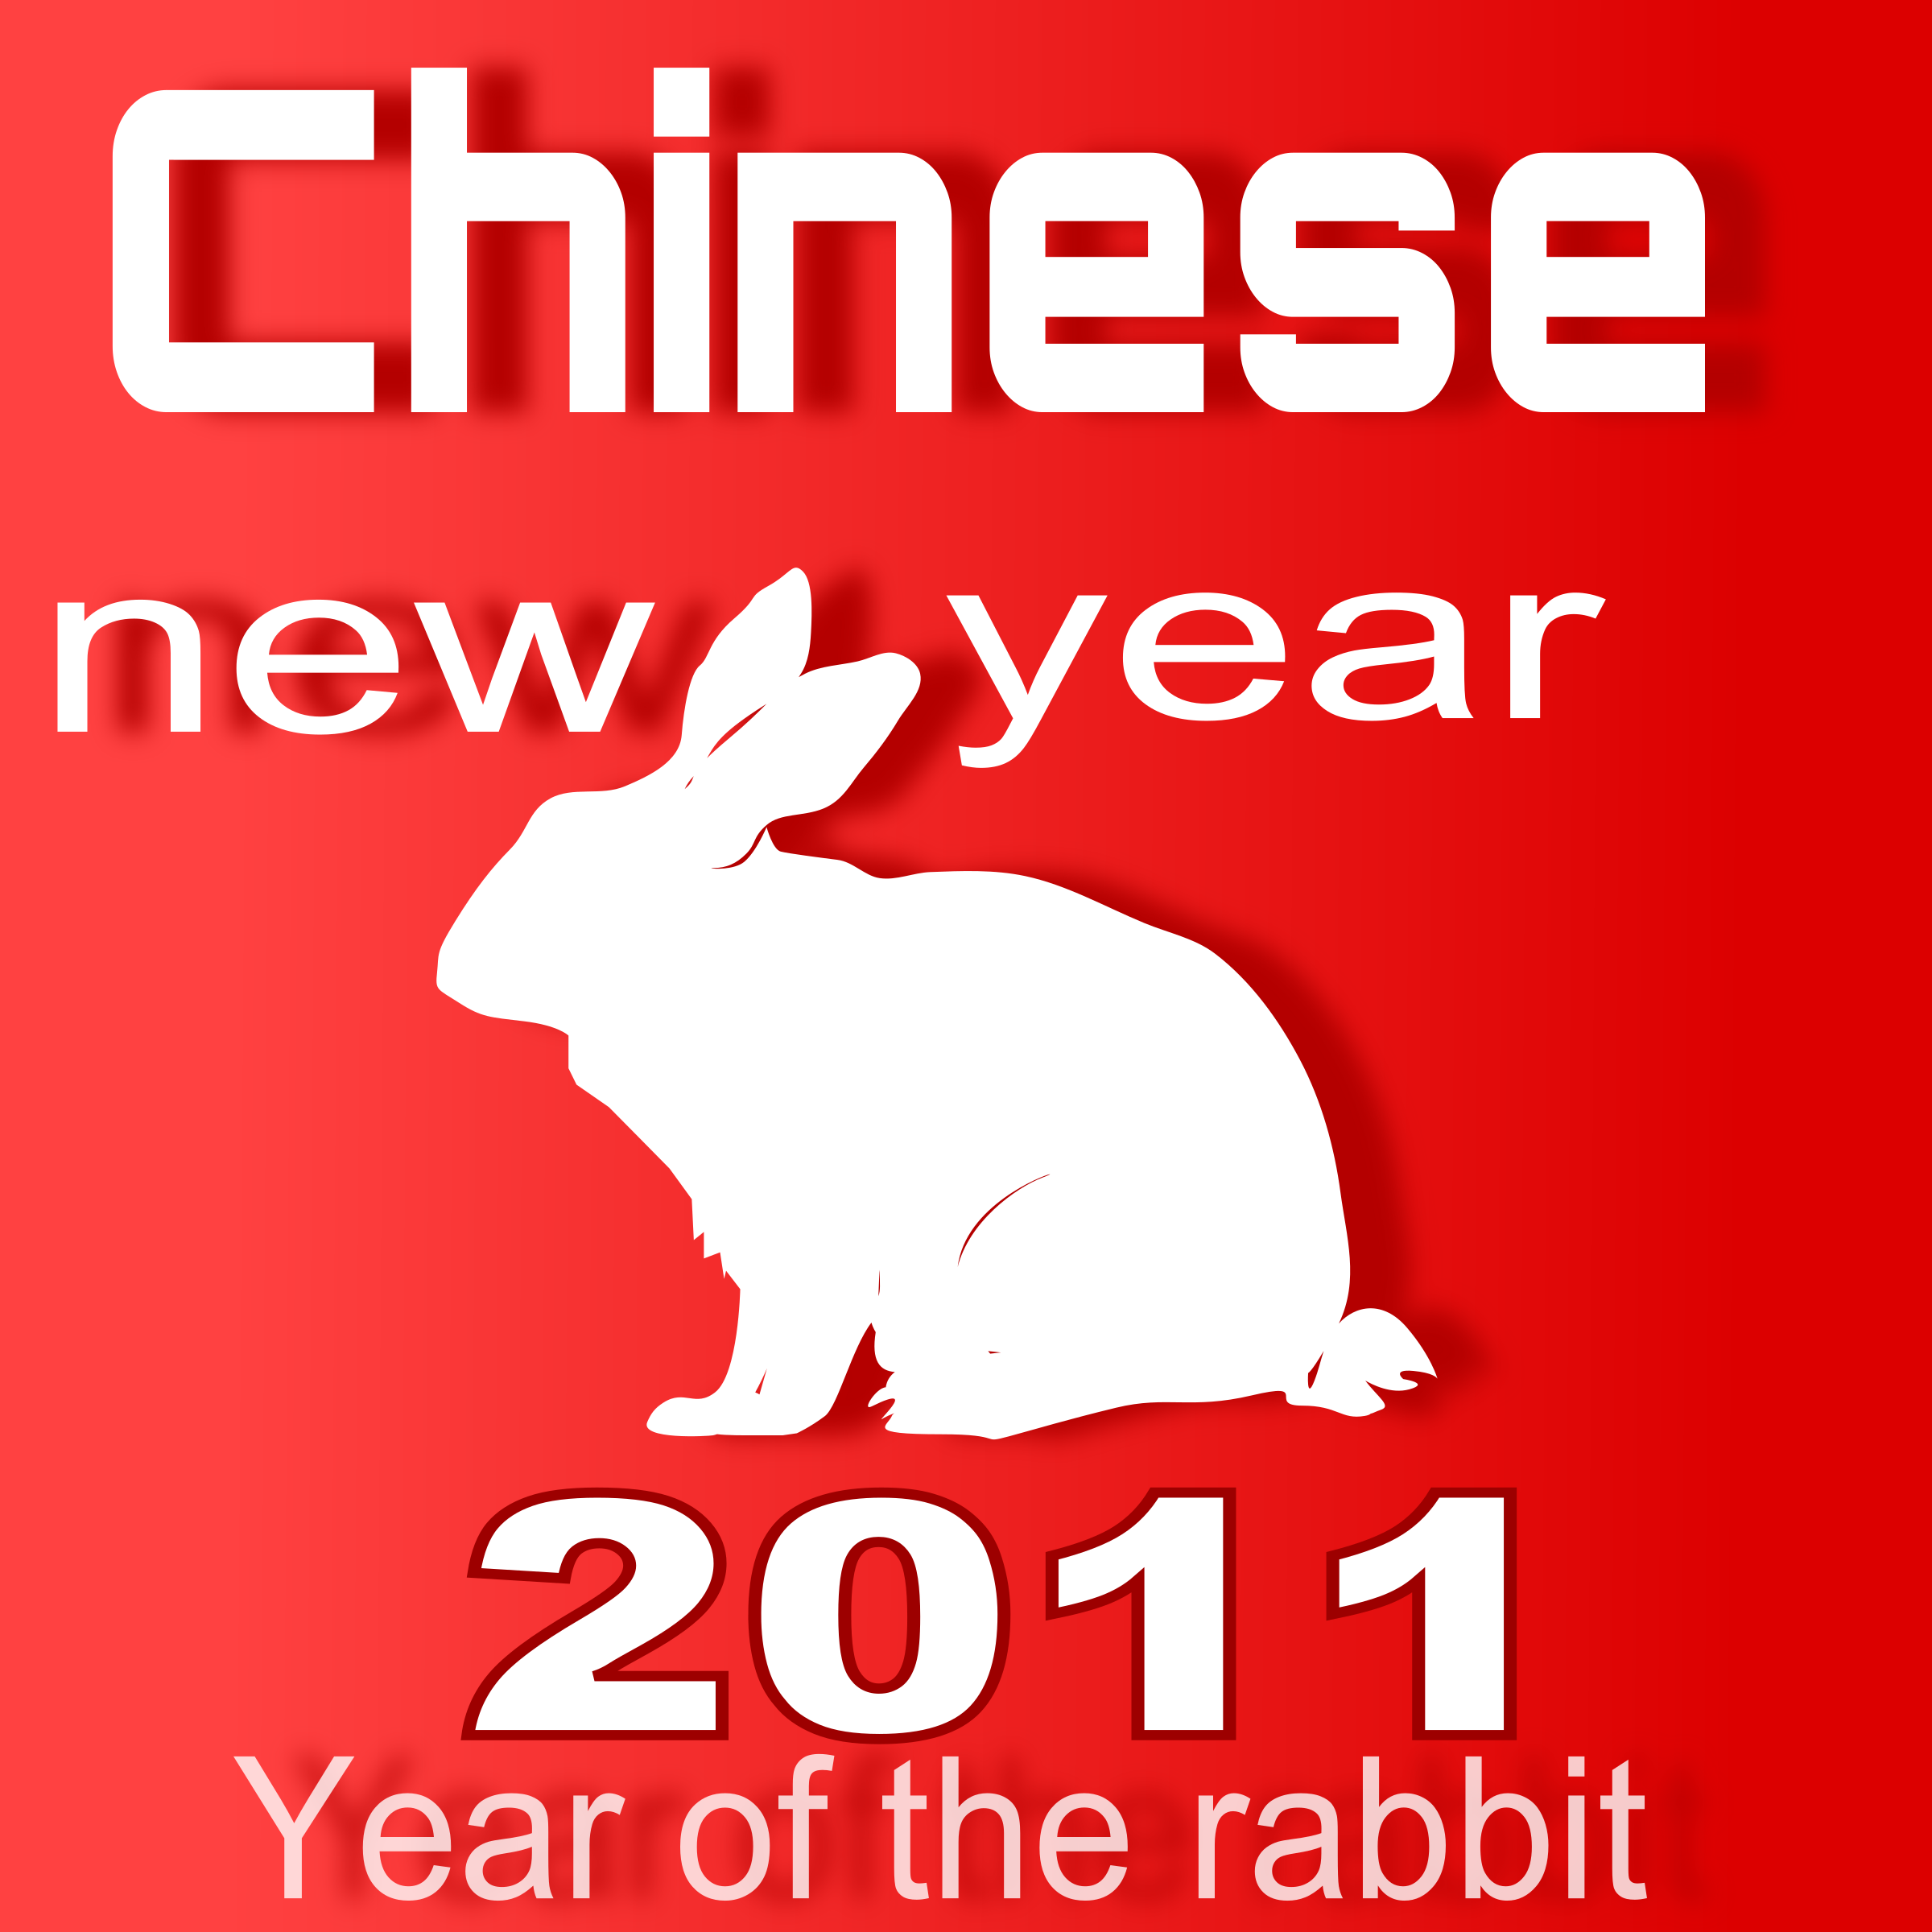 Year of the rabbit by netalloy